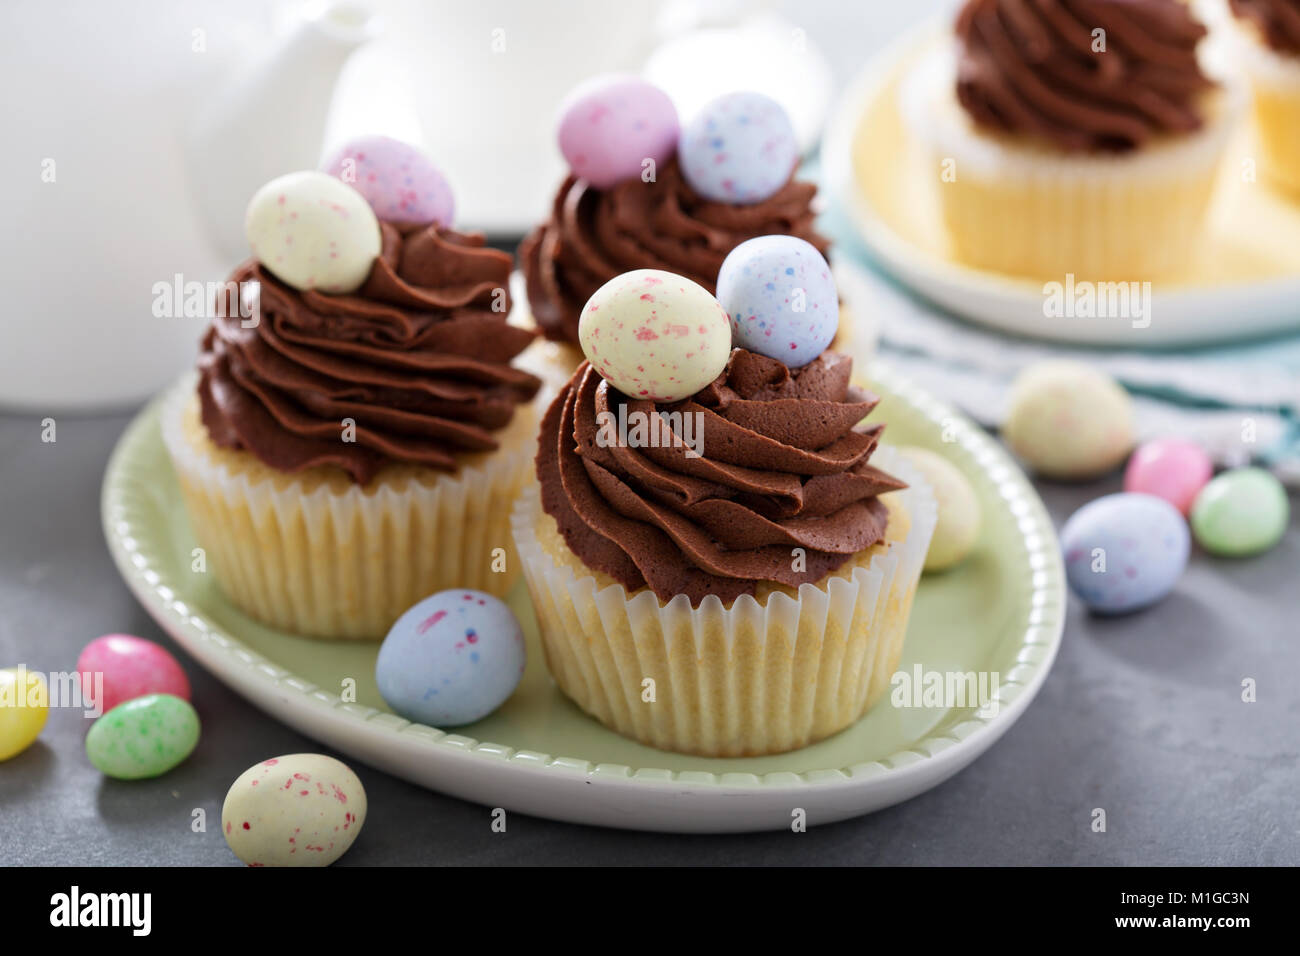 Easter vanilla cupcakes with chocolate frosting and candy eggs - Stock Image